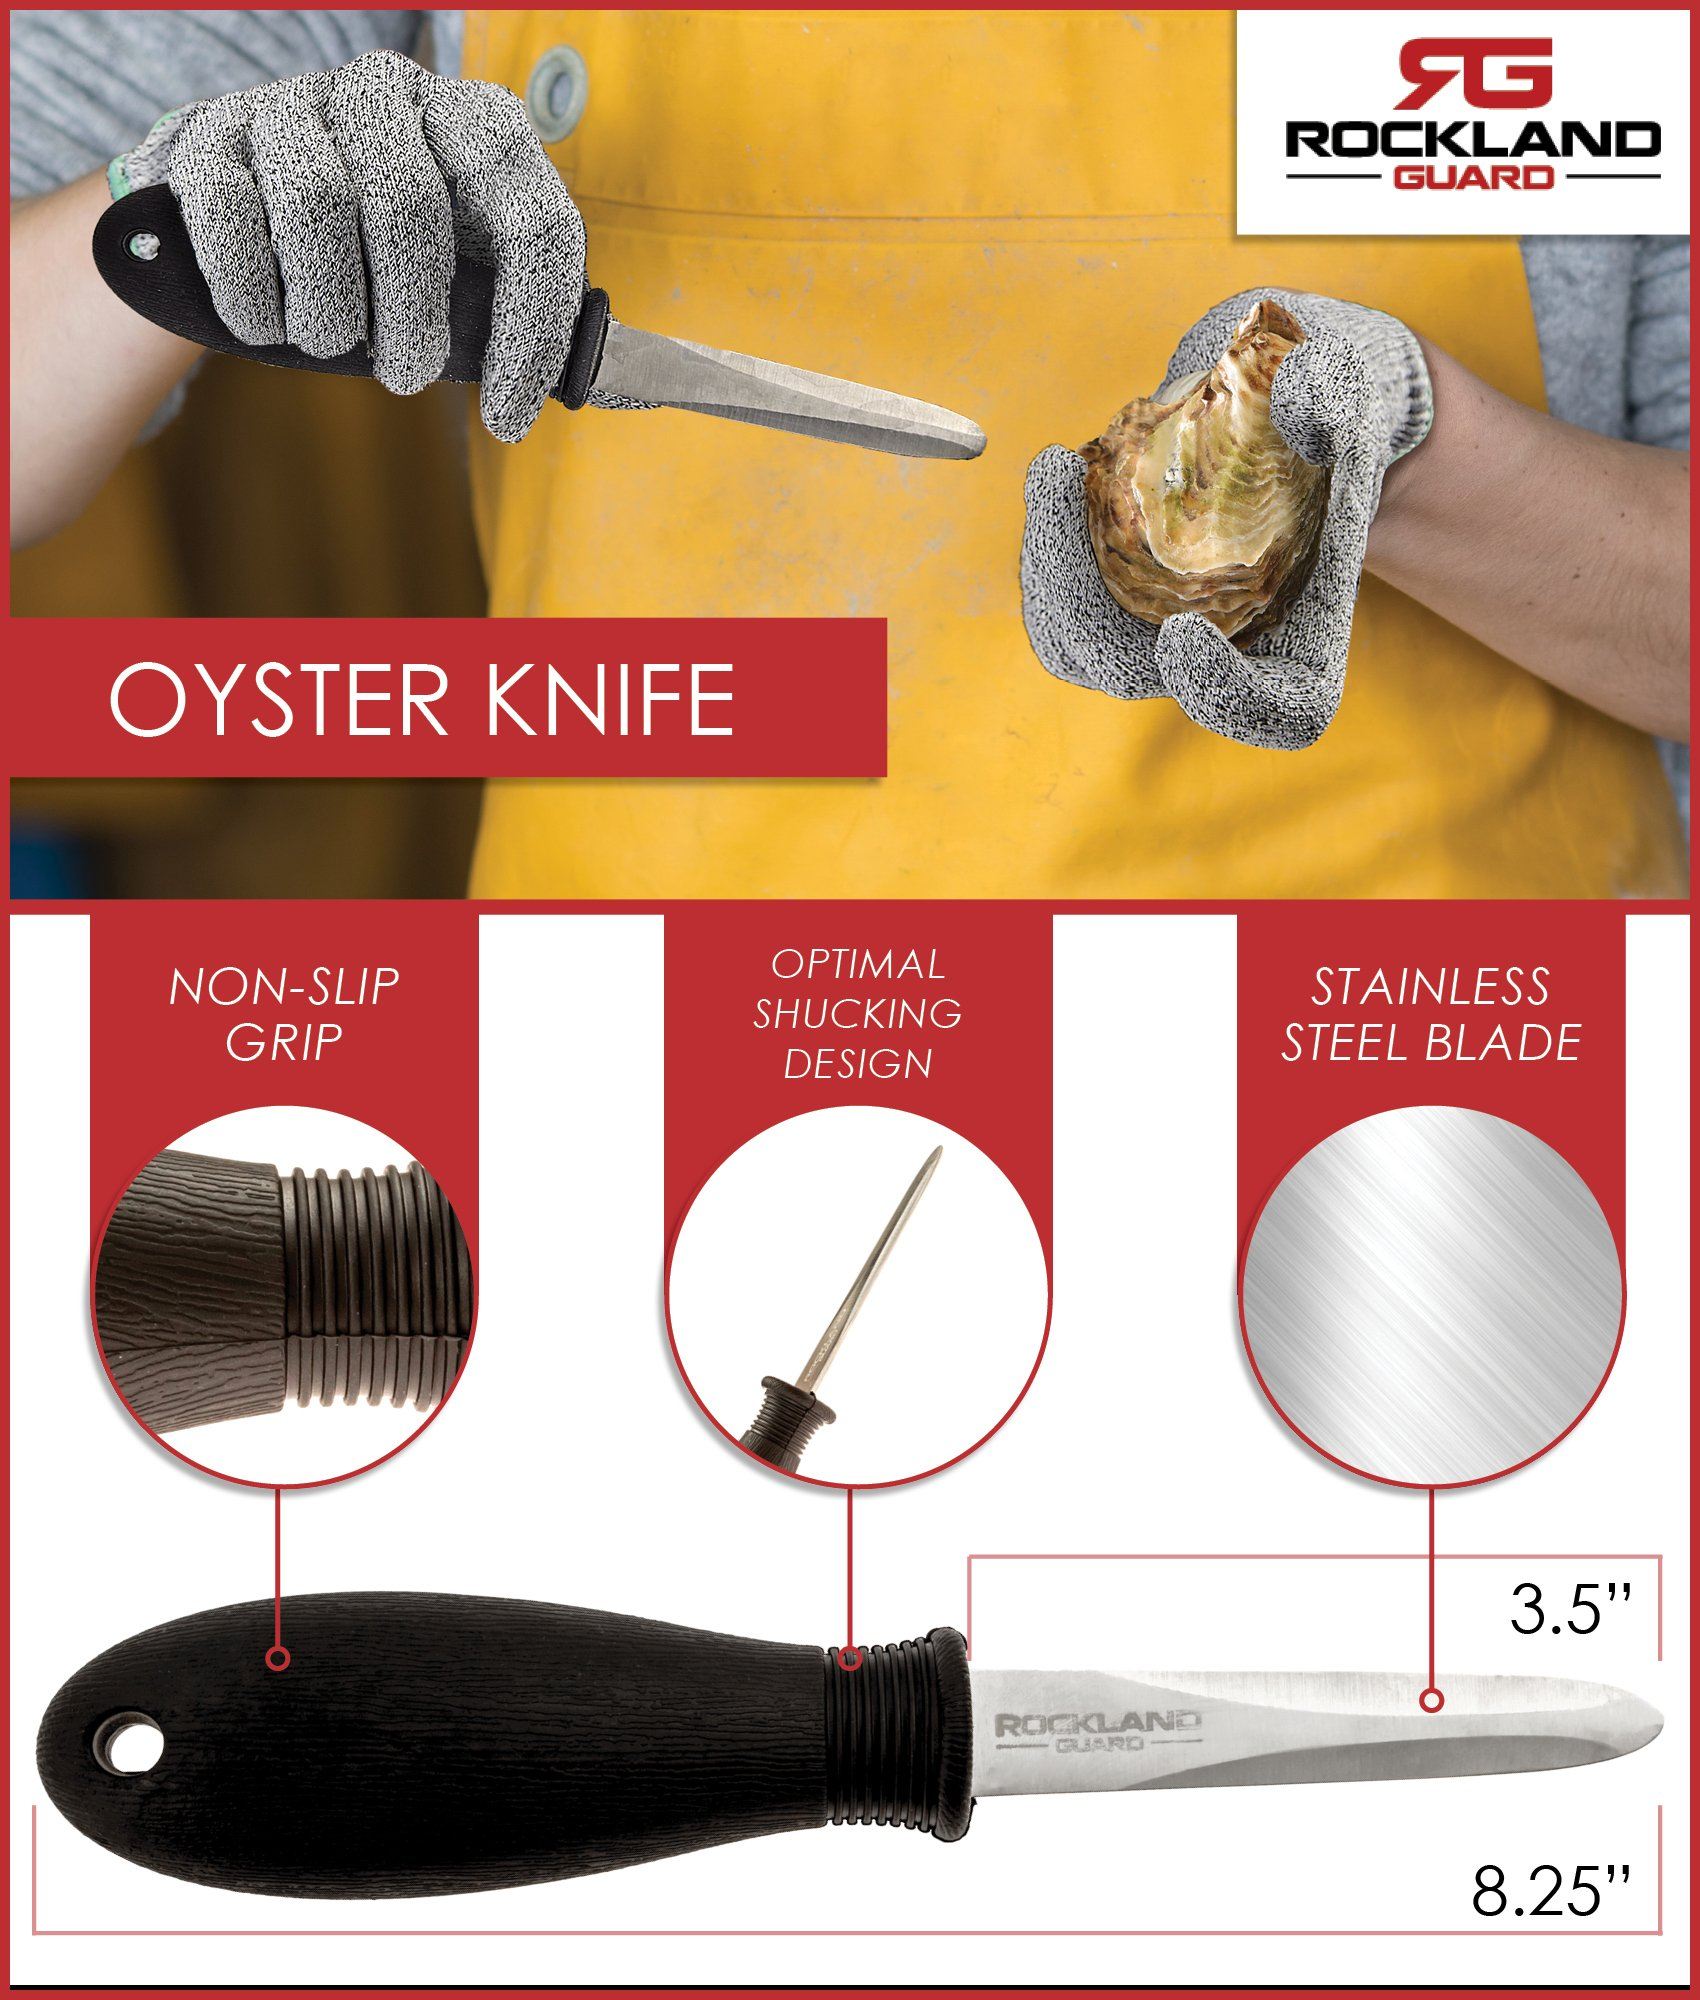 Rockland Guard Oyster Knife Shucker with Safe Handle Guard (4) by Rockland Guard (Image #2)